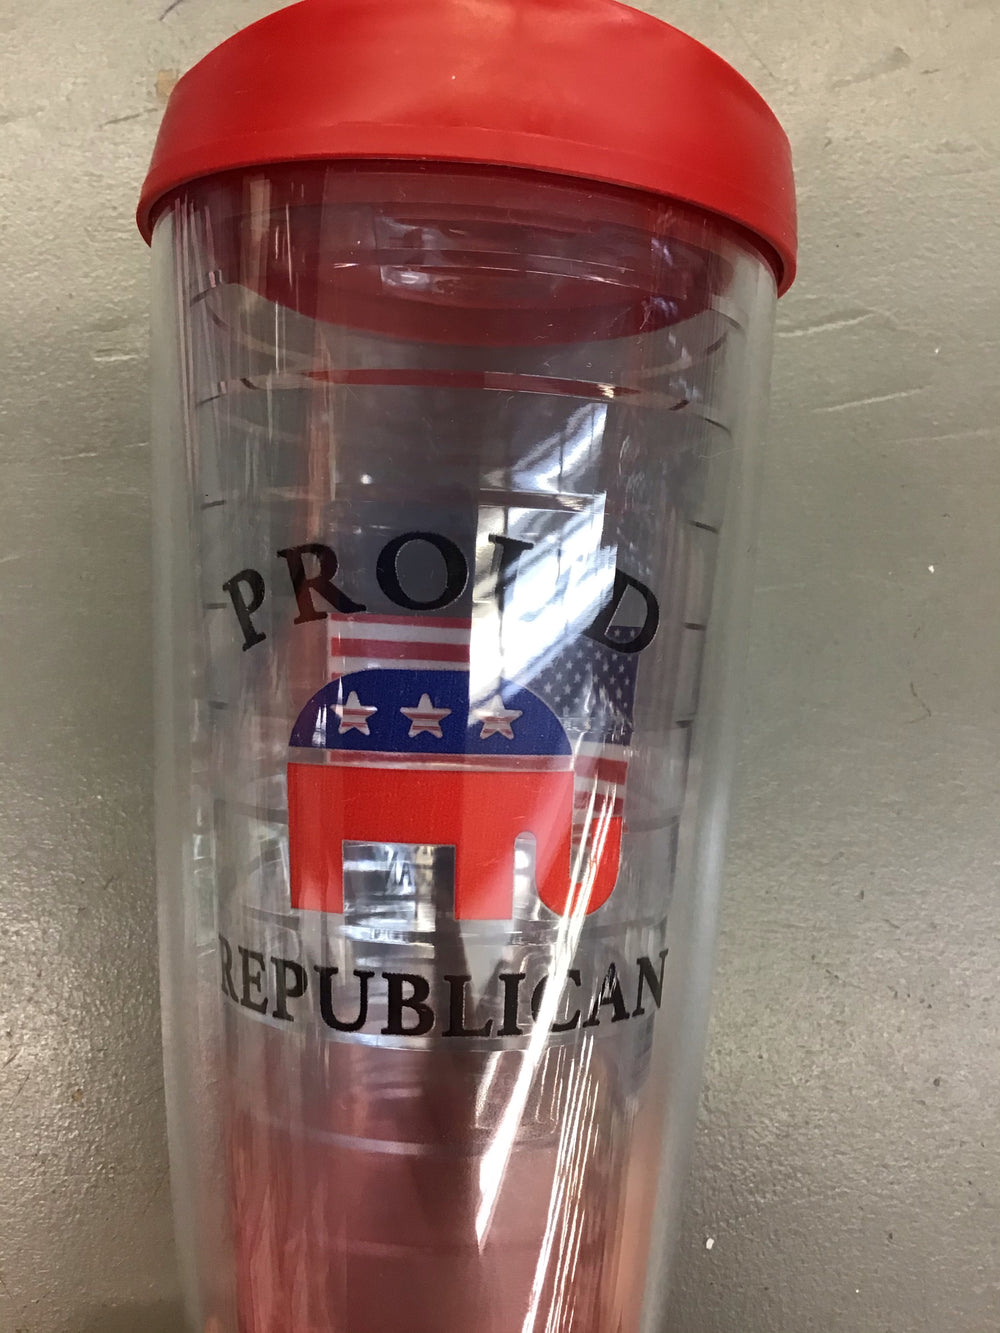 Proud Republican Tumbler